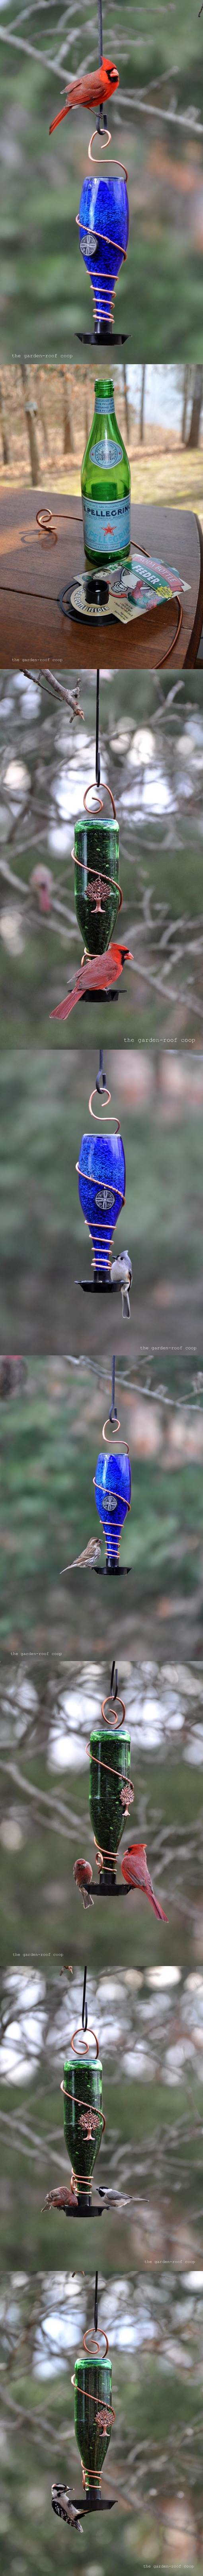 DIY Glass Bottle Bird Feeders 2